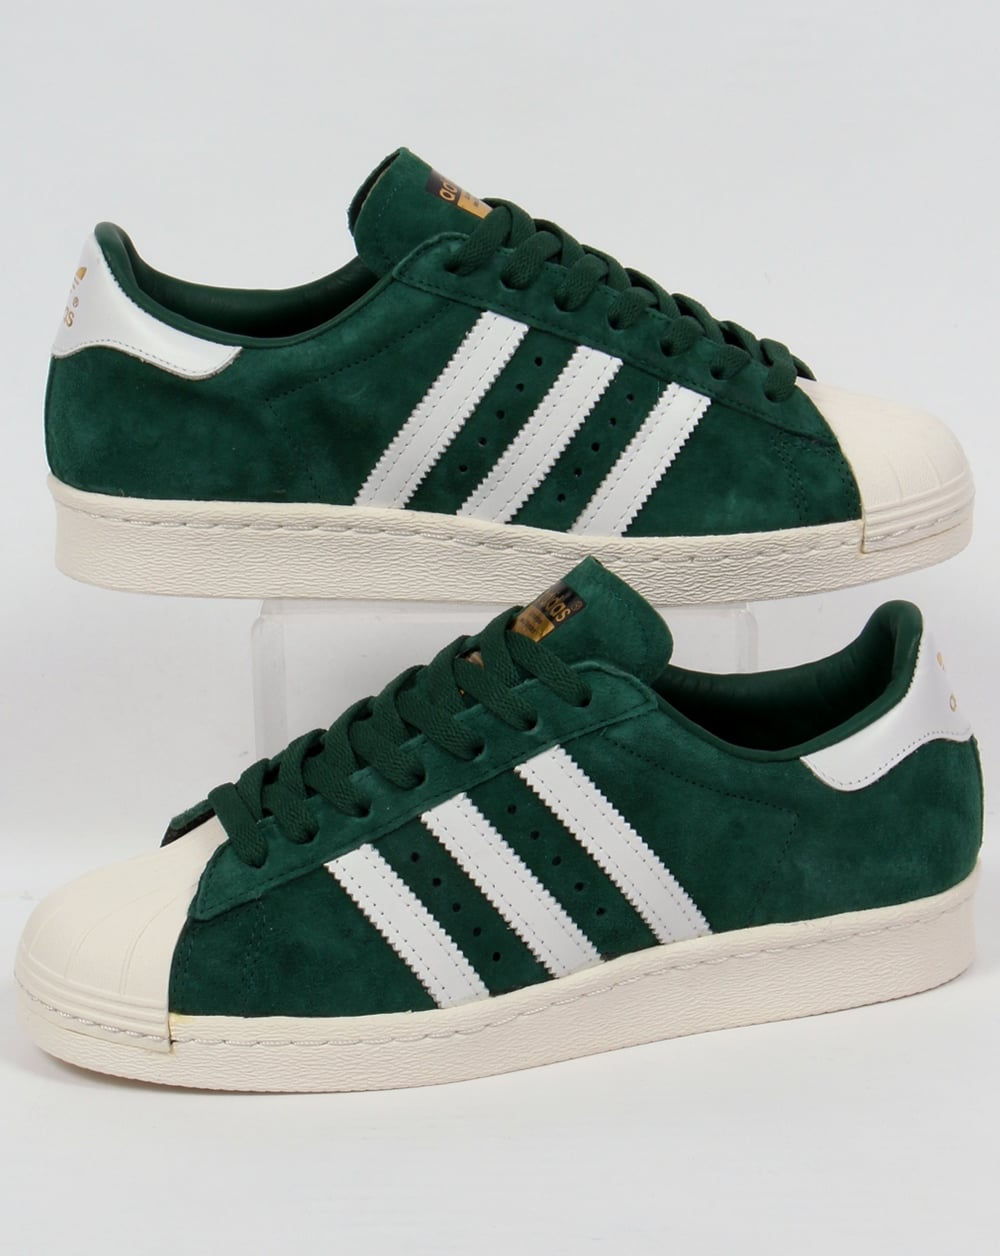 Adidas Superstar 80s Deluxe Trainers